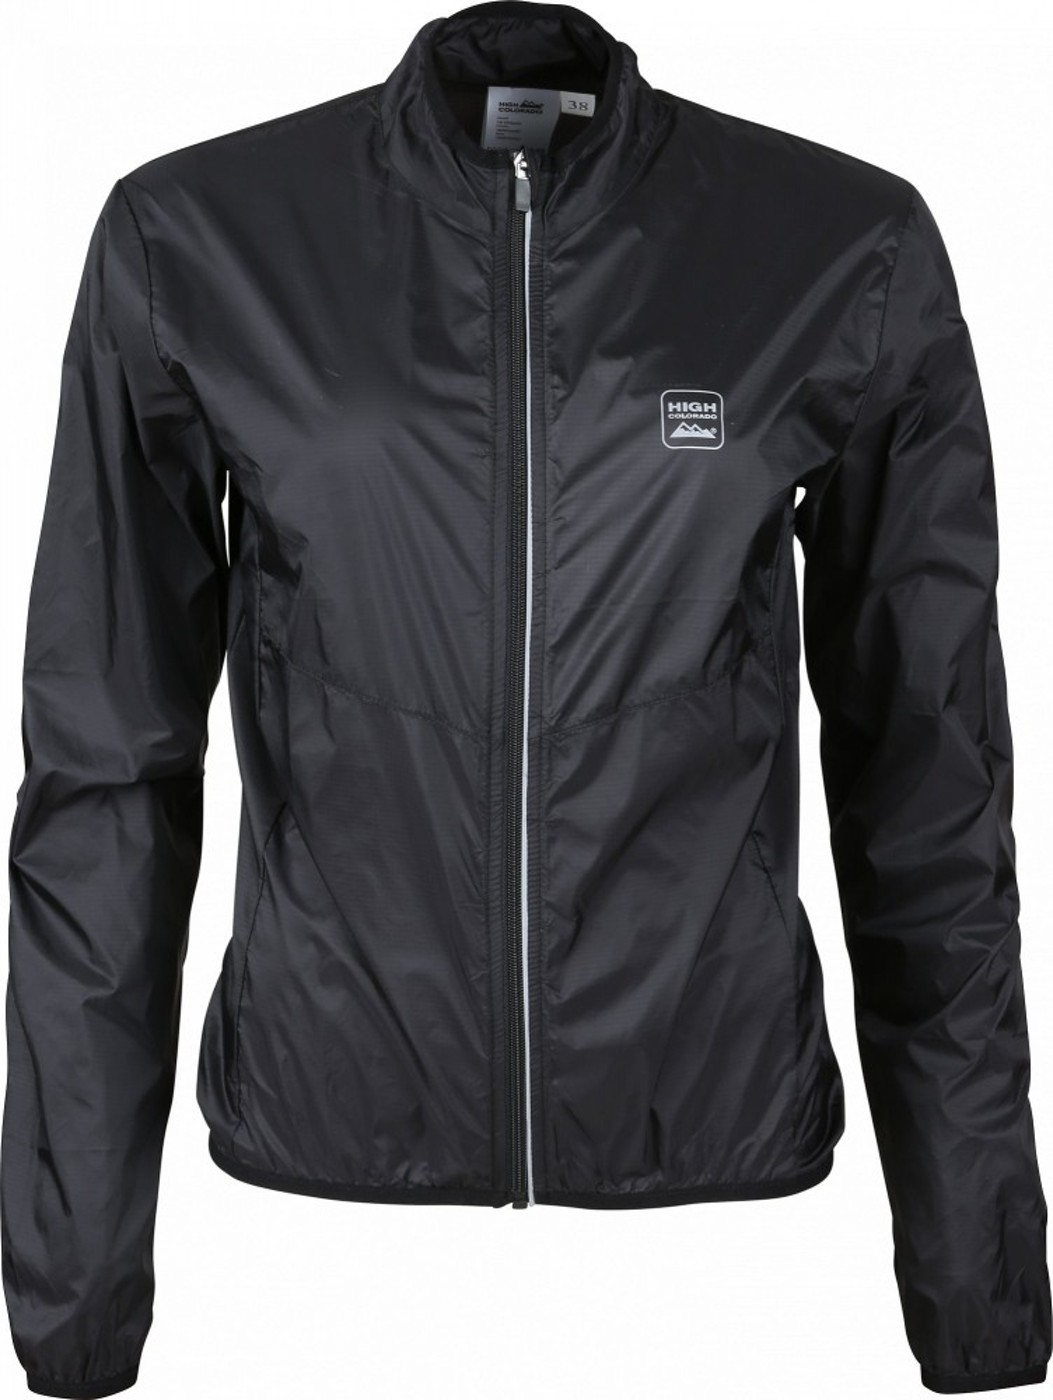 HIGH COLORADO BIKE WINDBREAKER - Damen